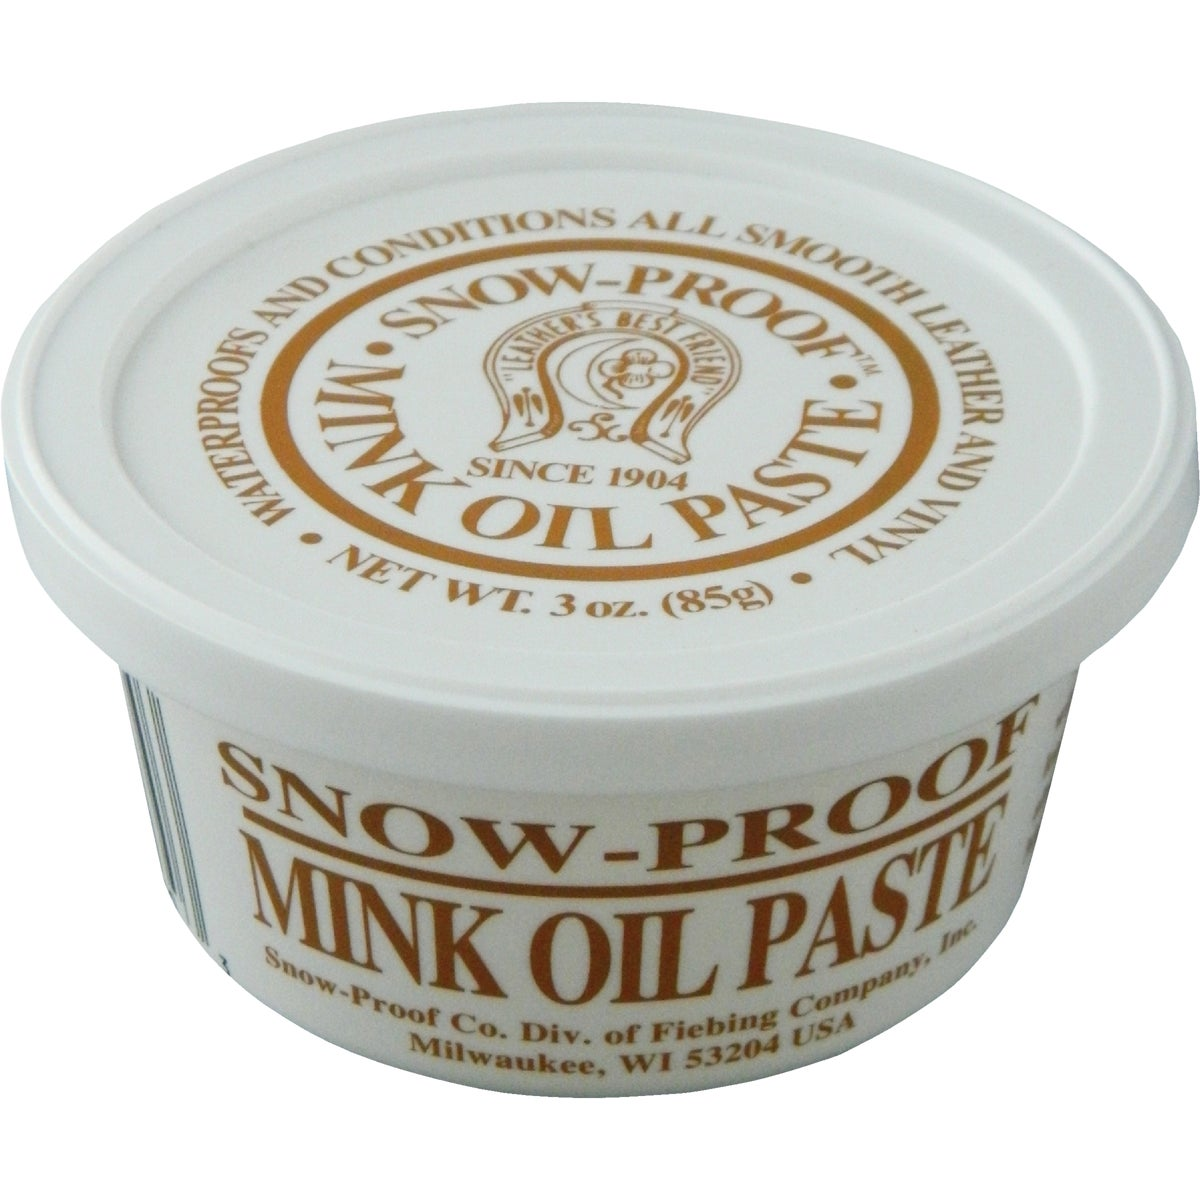 3OZ SNOW PROOF MINK OIL